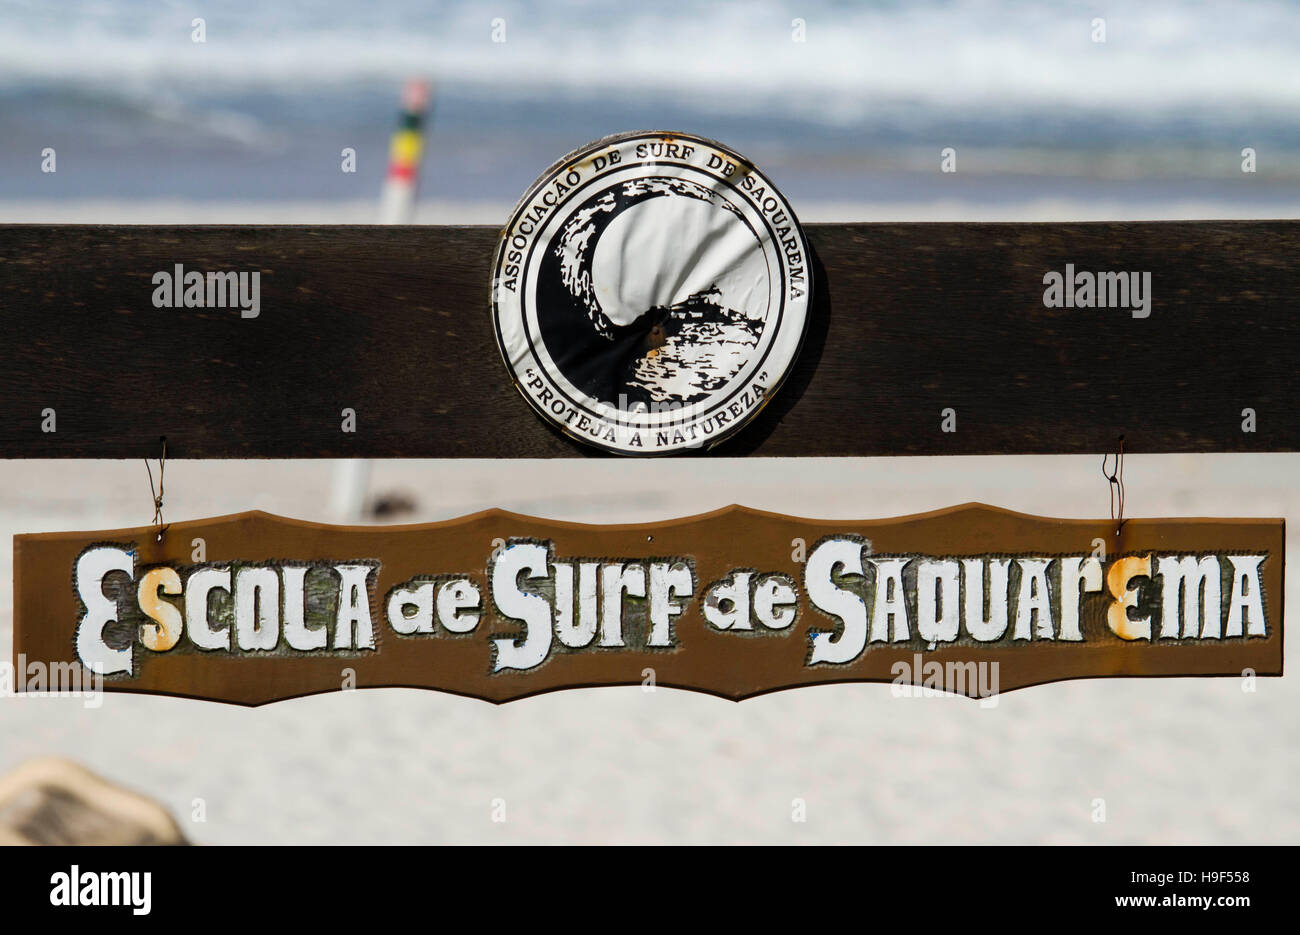 Surf school logo and sign - Stock Image